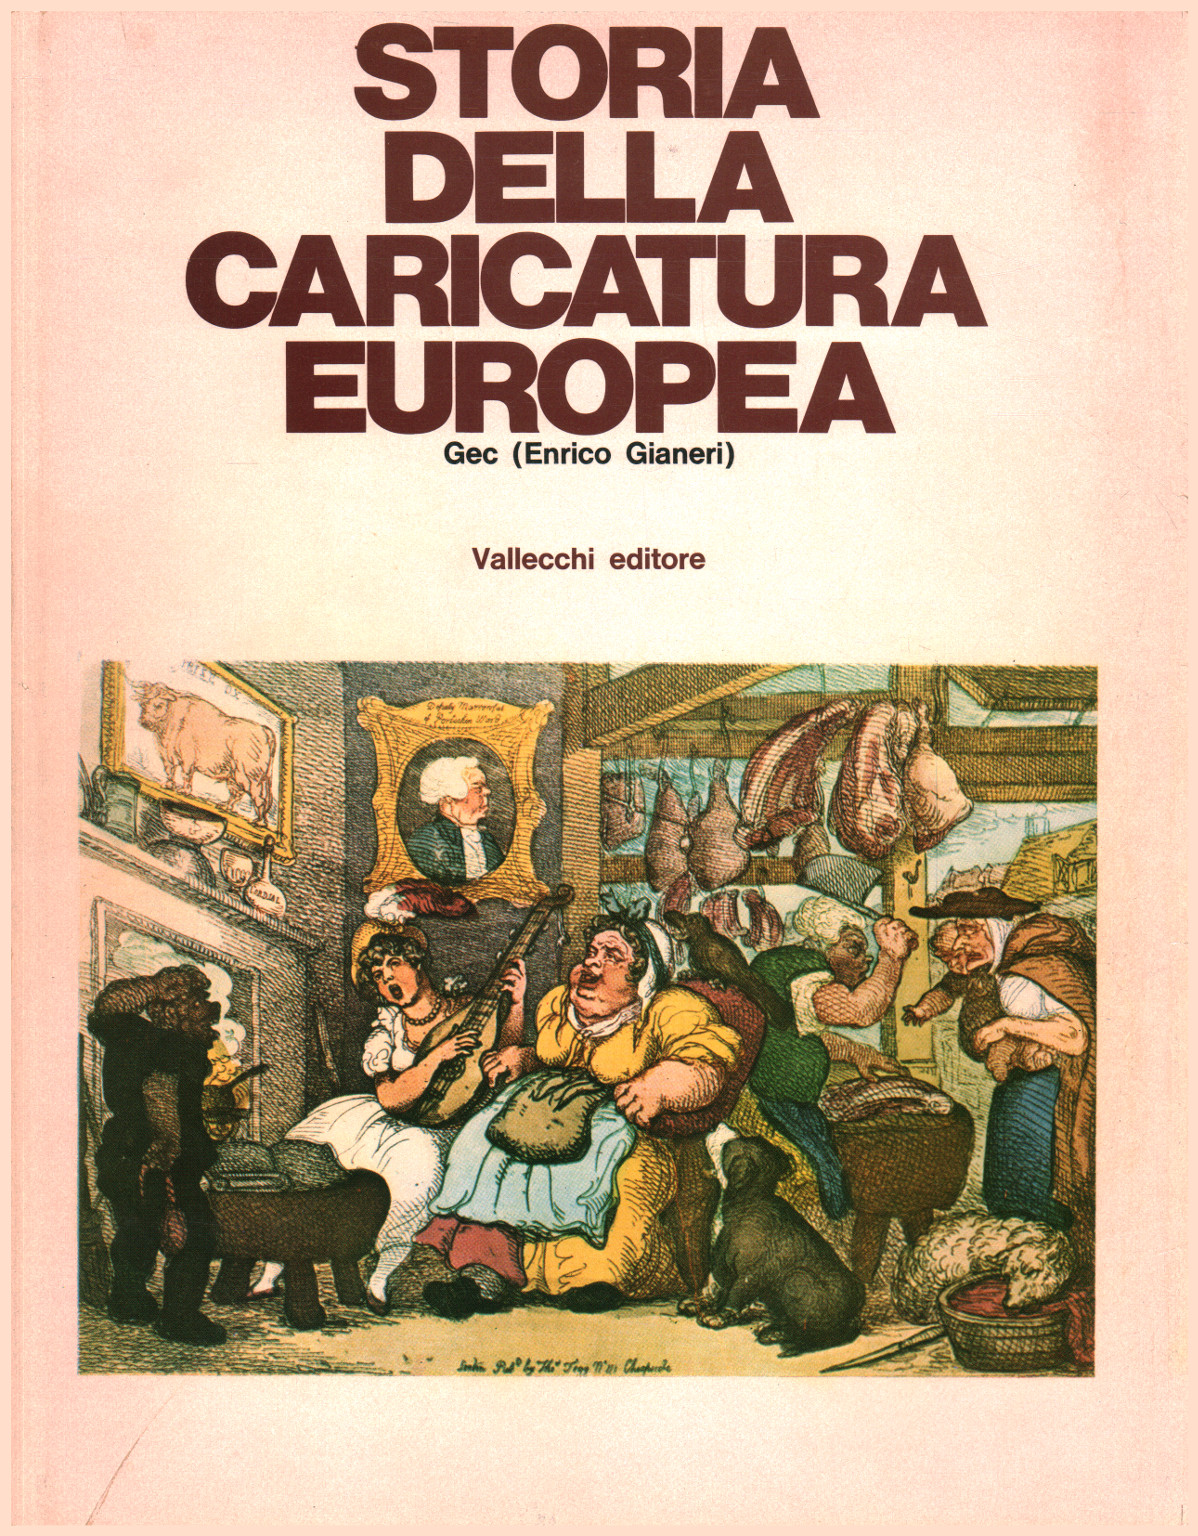 History of caricature and european s.a.